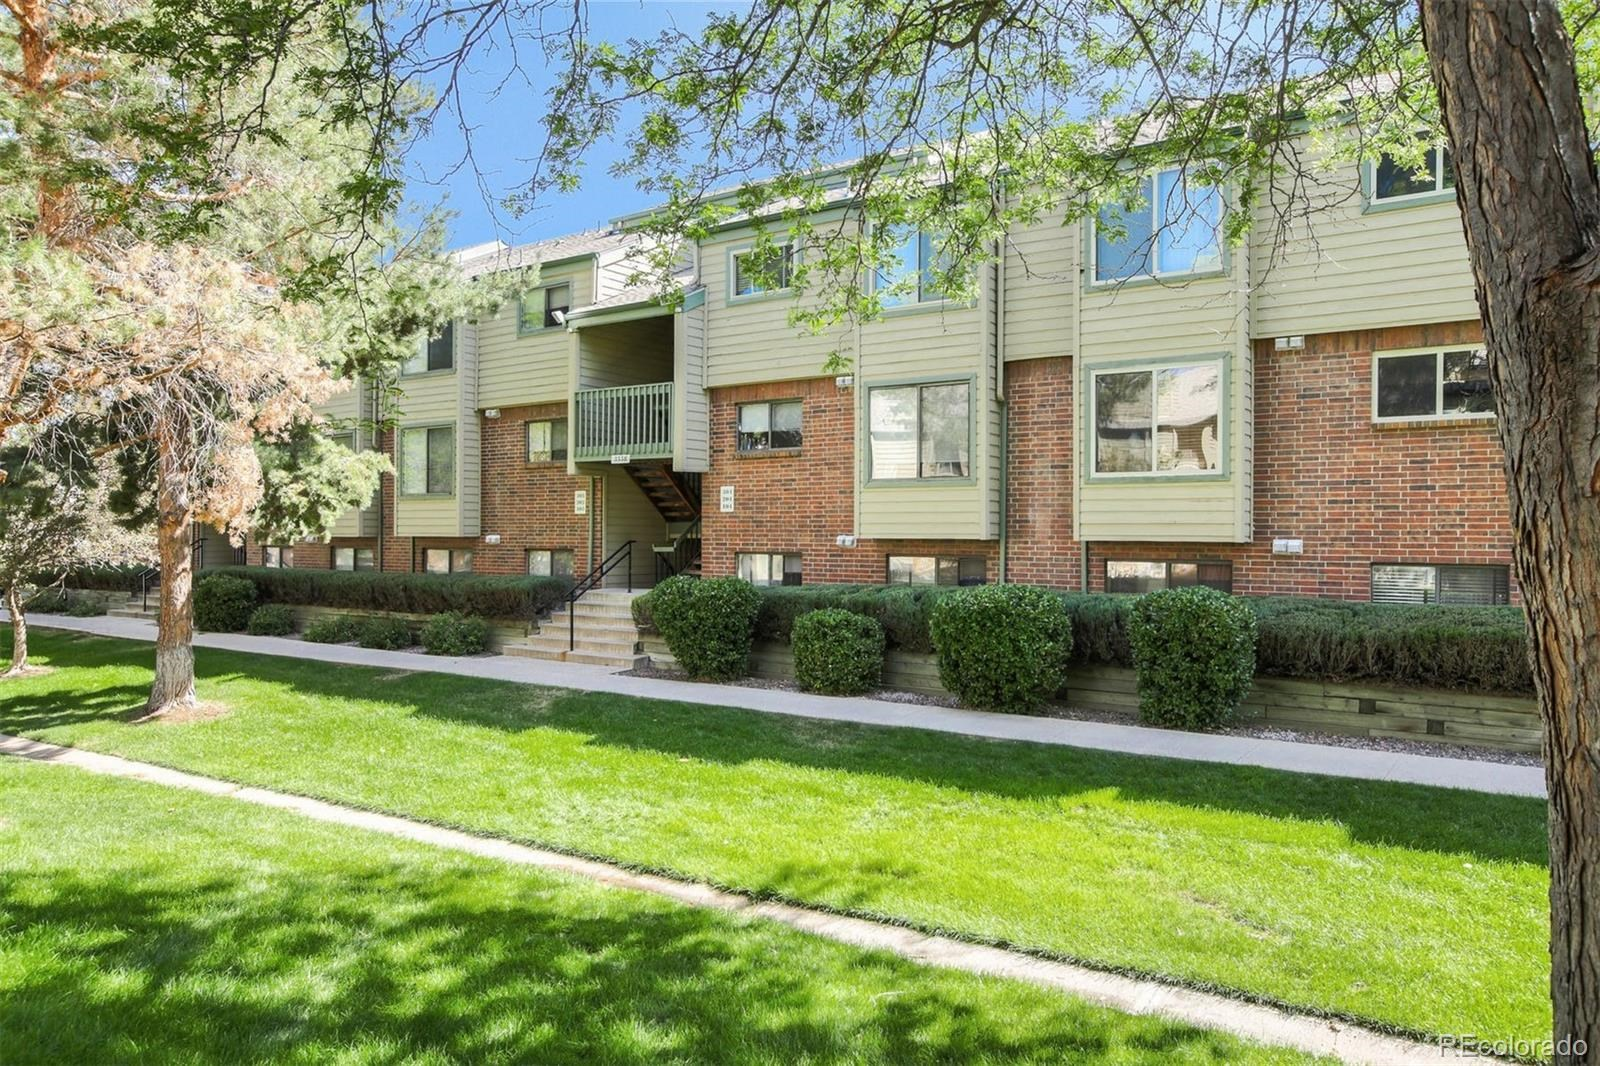 MLS# 2672185 - 1 - 3558 S Depew Street #101, Lakewood, CO 80235